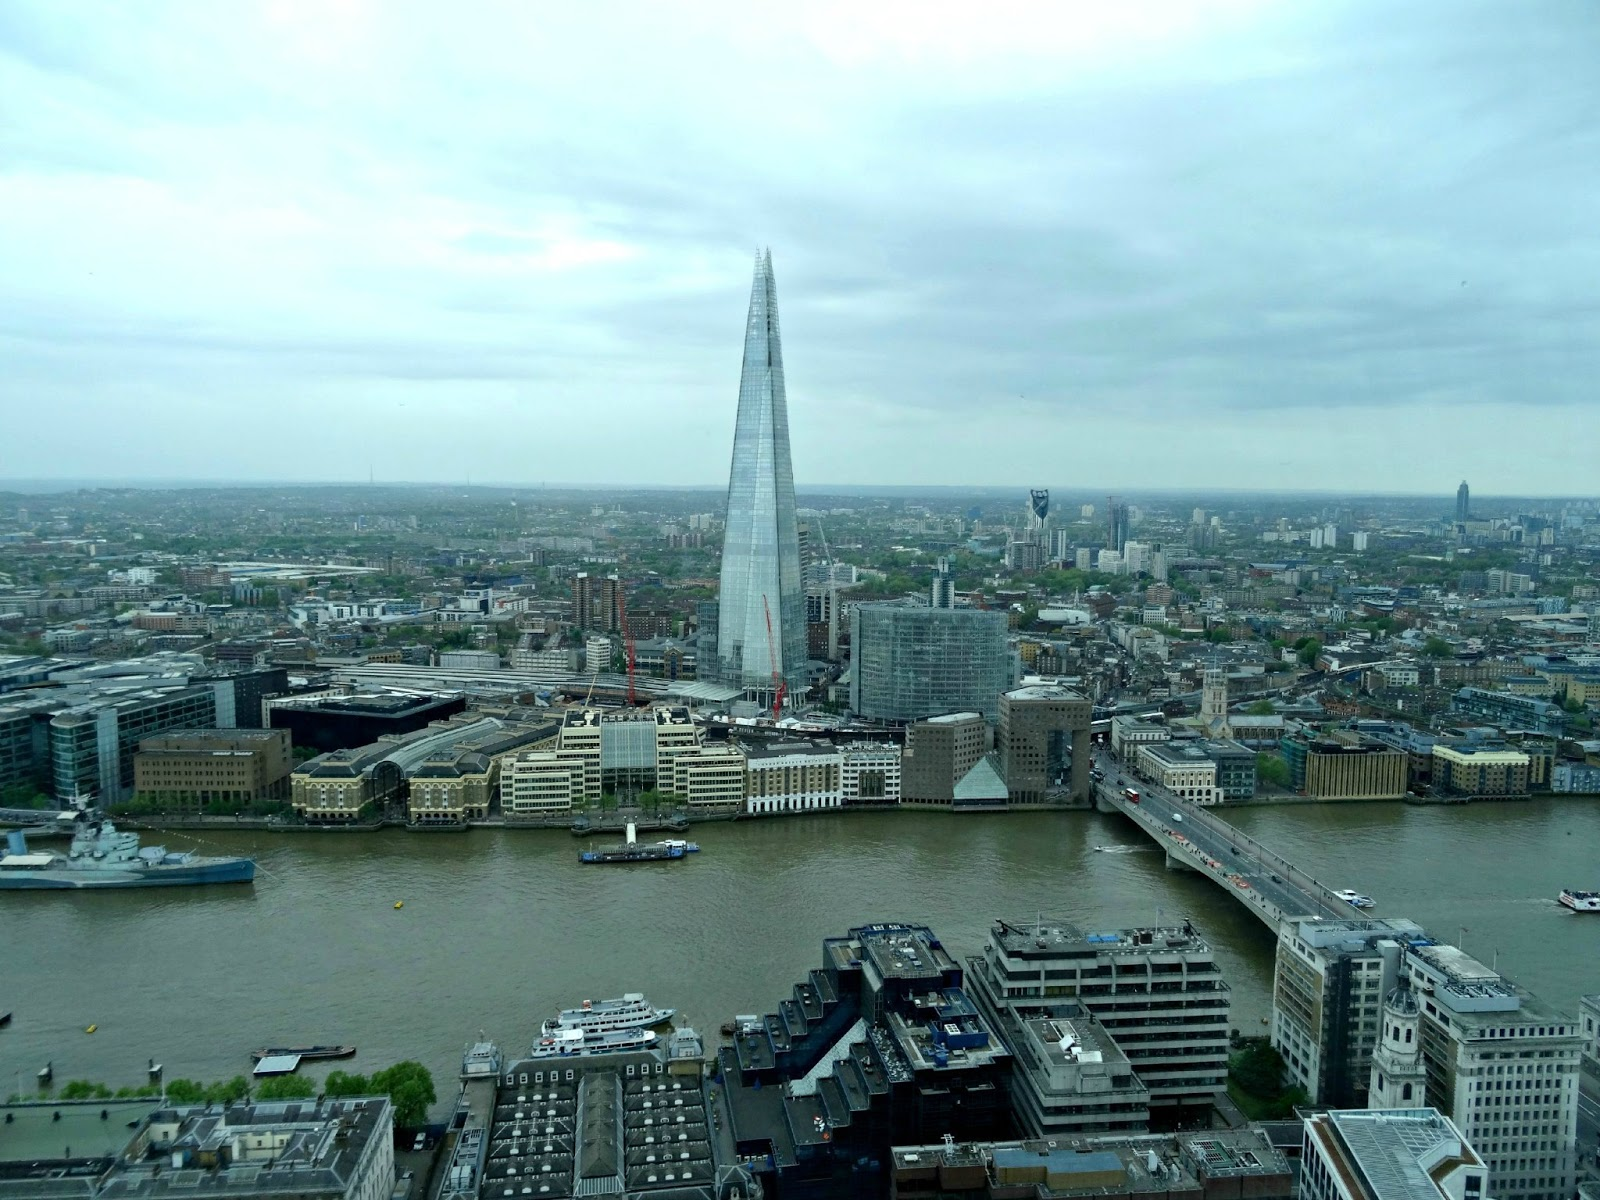 view from Sky Garden London